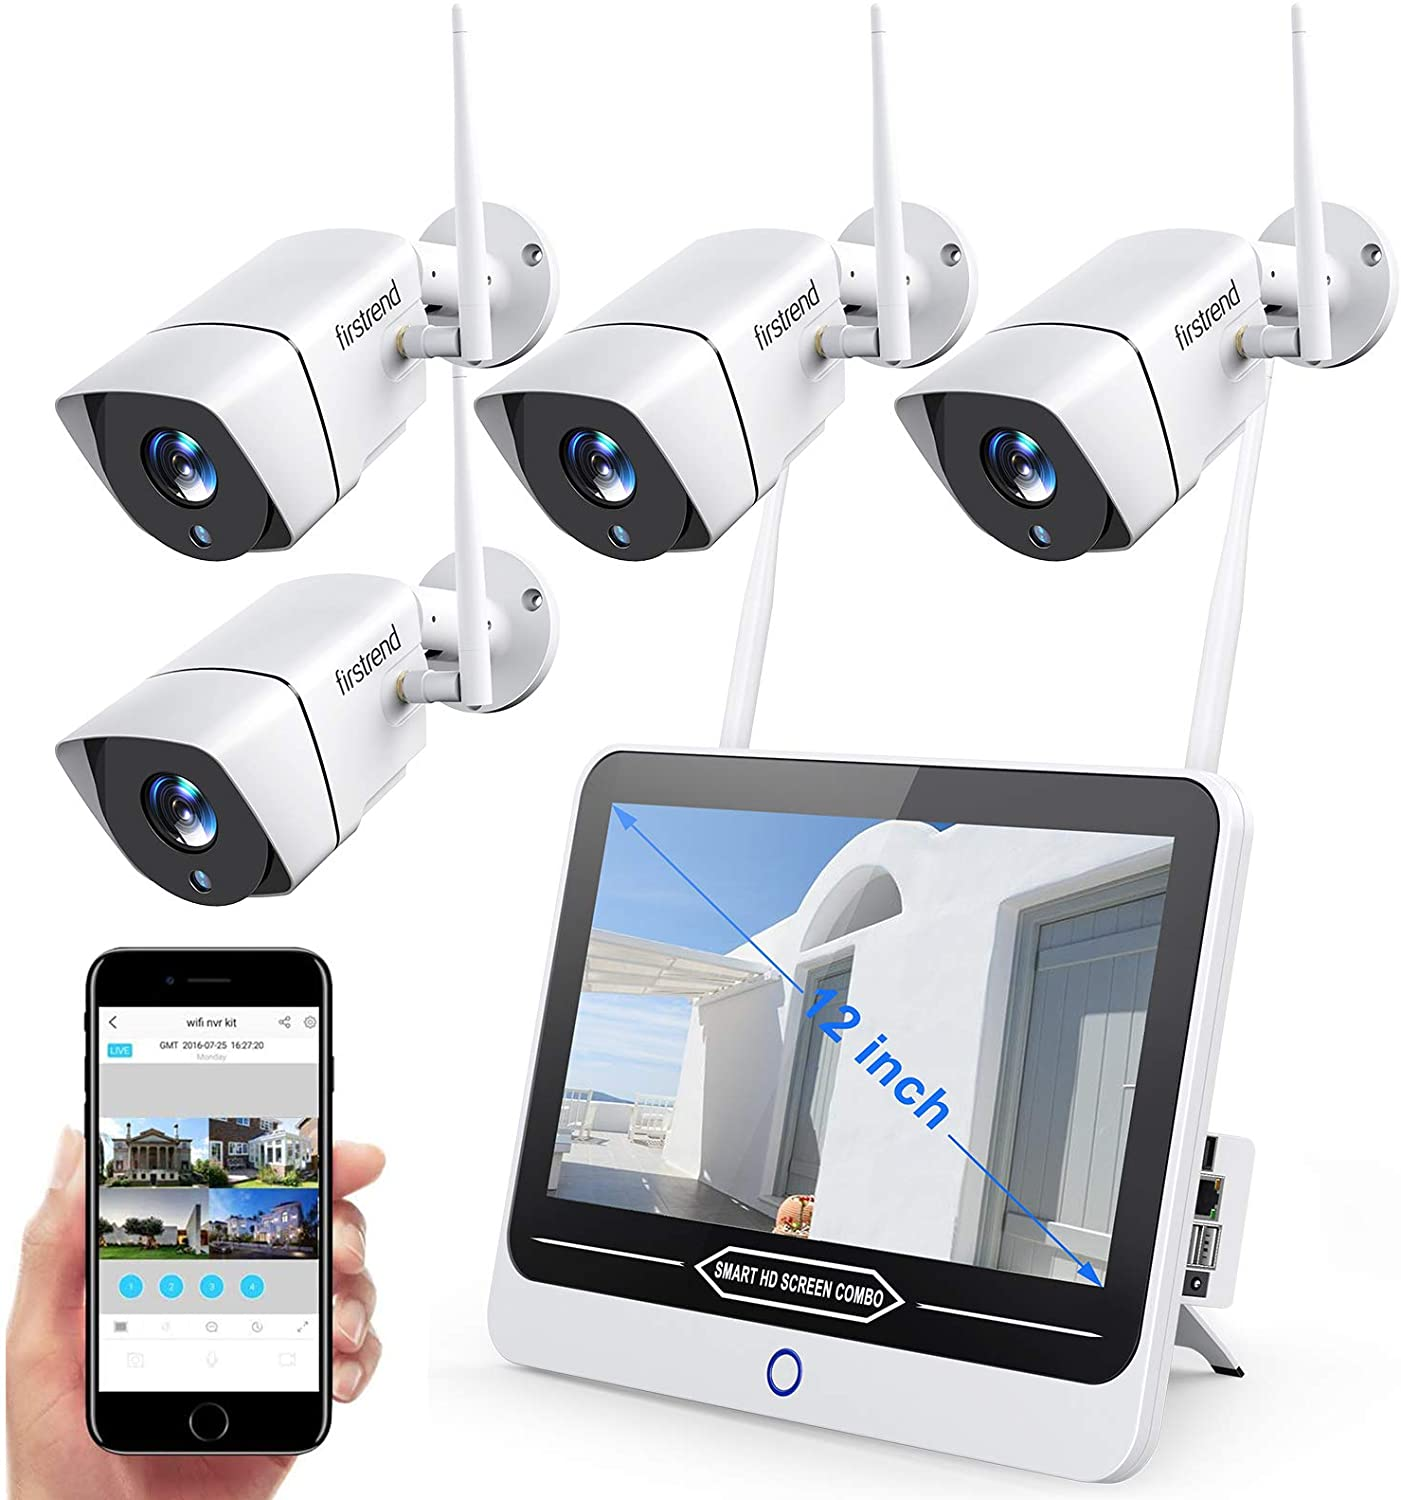 [2021 Newest]Security Camera System Wireless with Monitor,Firstrend All in One with 12inch Monitor Wireless Security System 1080P 4pcs Cameras Night Vision Motion Alert for Indoor Outdoor Surveillance